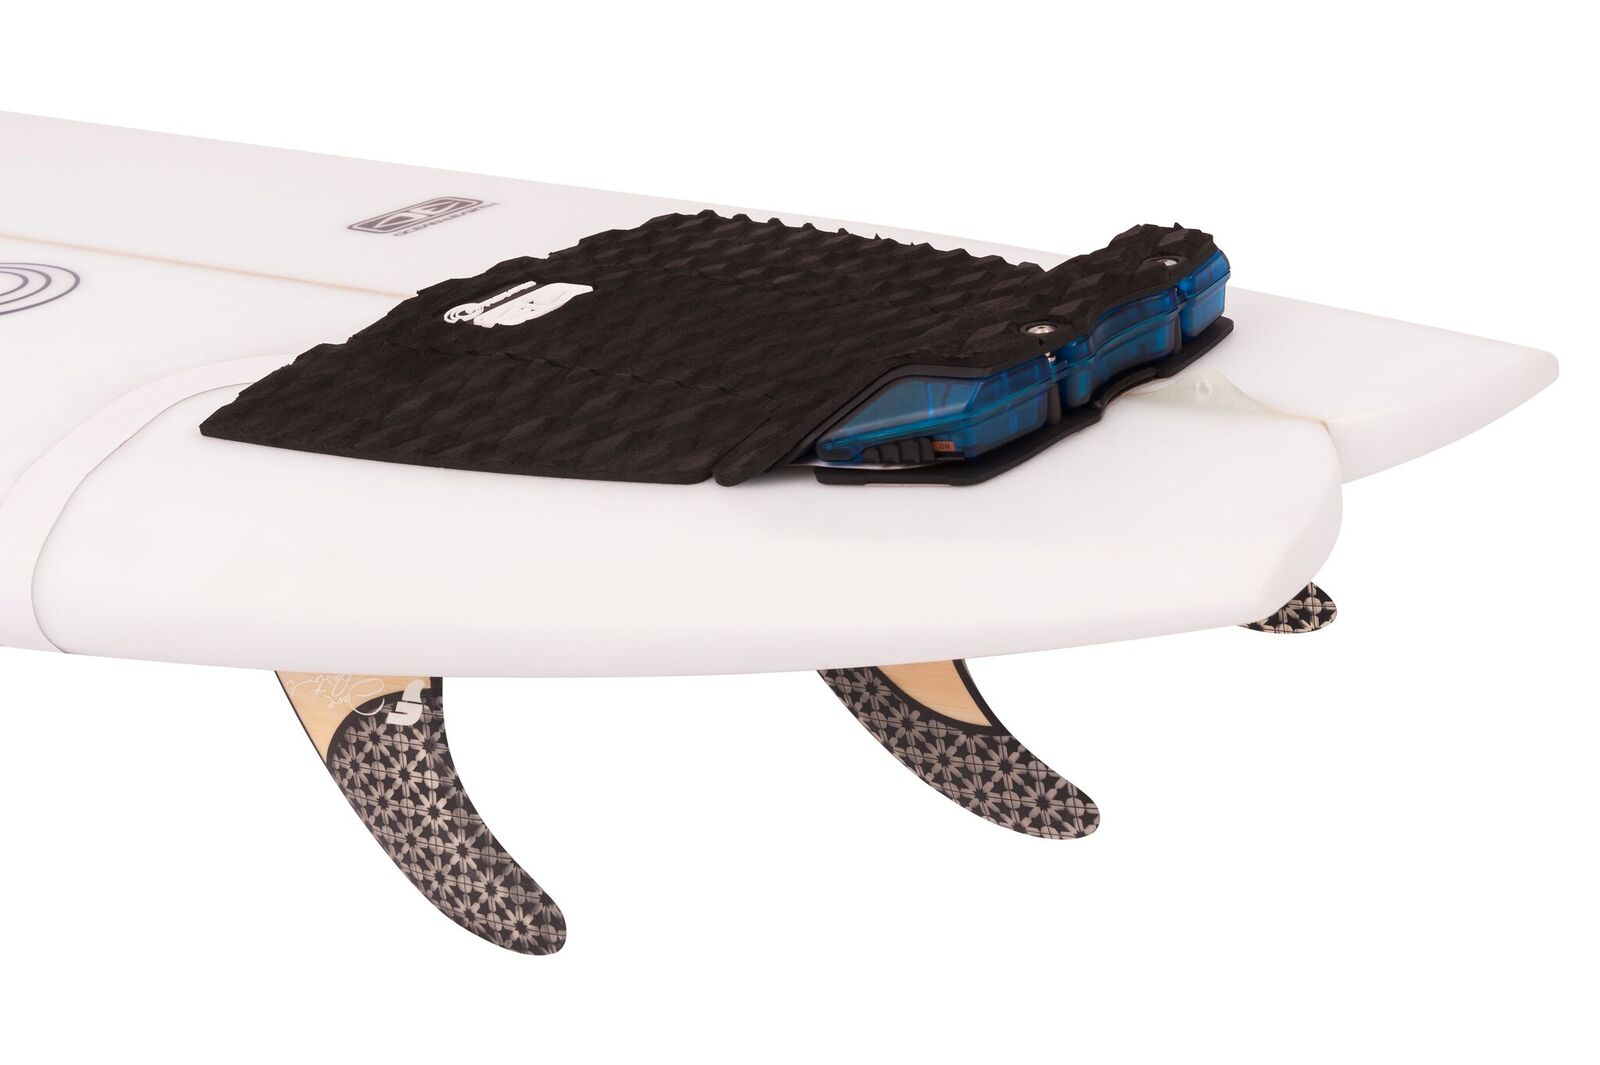 Surf's up, be safe and save: 500 more personal shark deterrents available